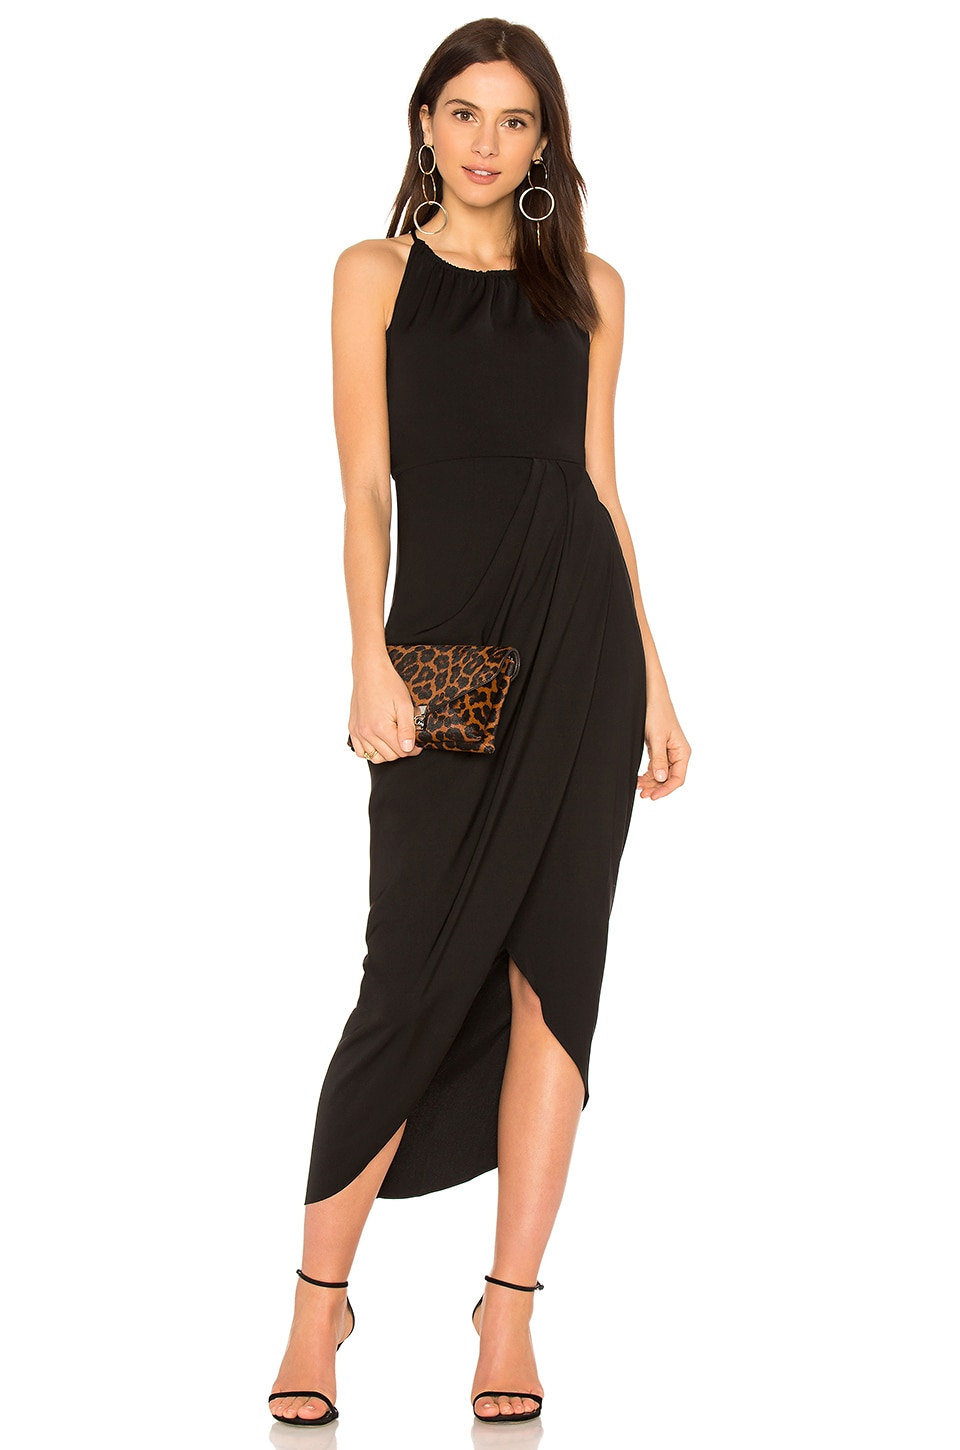 Shona Joy High Neck Ruched Dress in Black